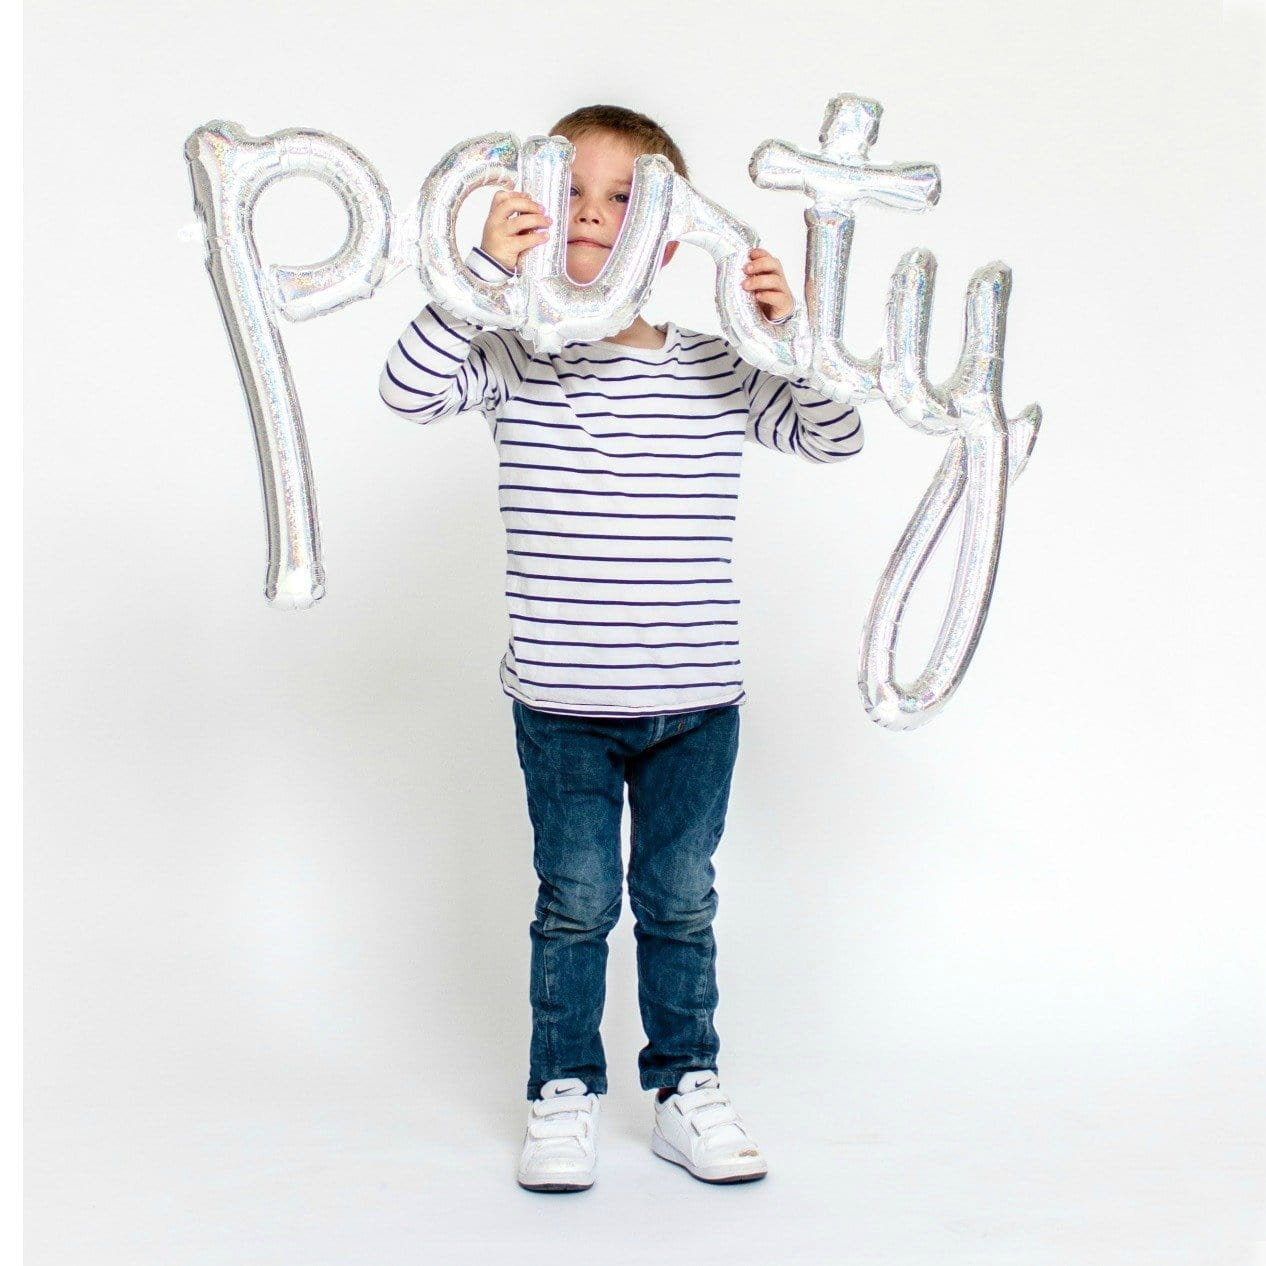 Party Script Balloon | Party Balloon Banner